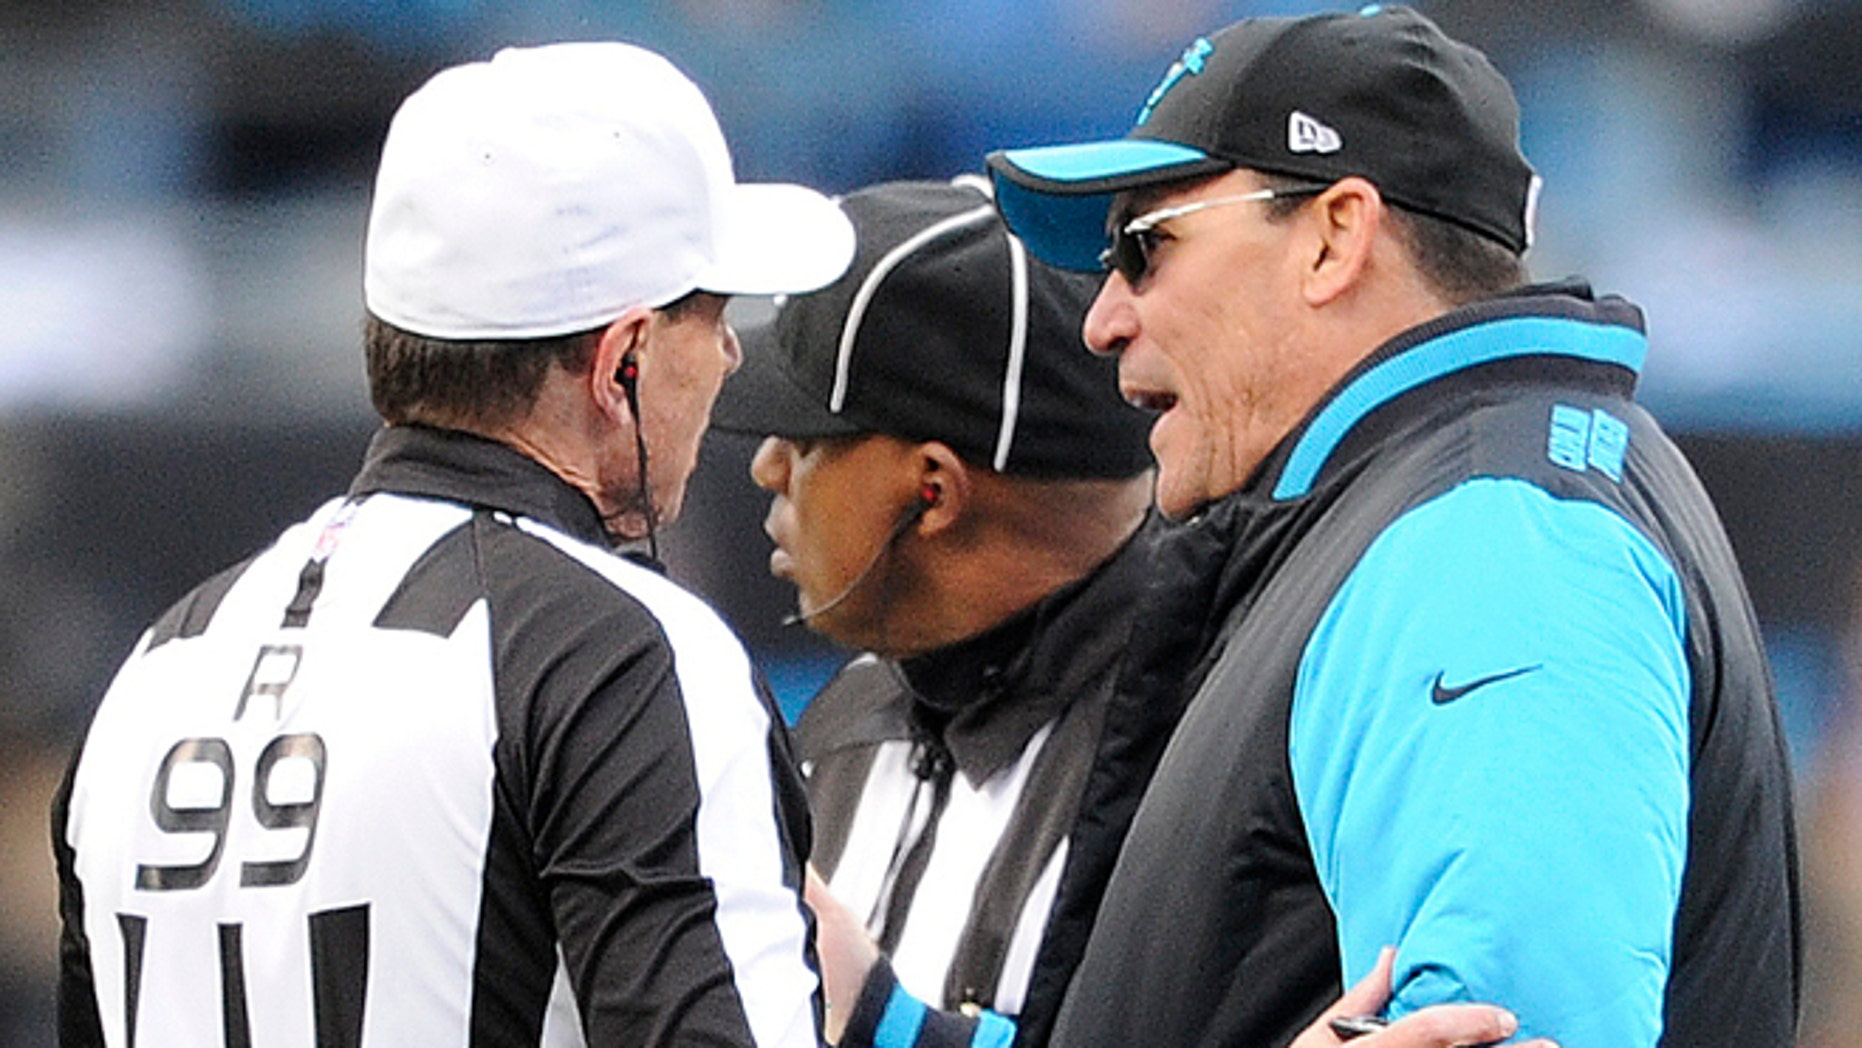 Carolina Panthers head coach Ron Rivera speaks to referee Tony Corrente (99) during the second half of an NFL divisional playoff football game against the Seattle Seahawks, Sunday, Jan. 17, 2016, in Charlotte, N.C. (AP Photo/Mike McCarn)